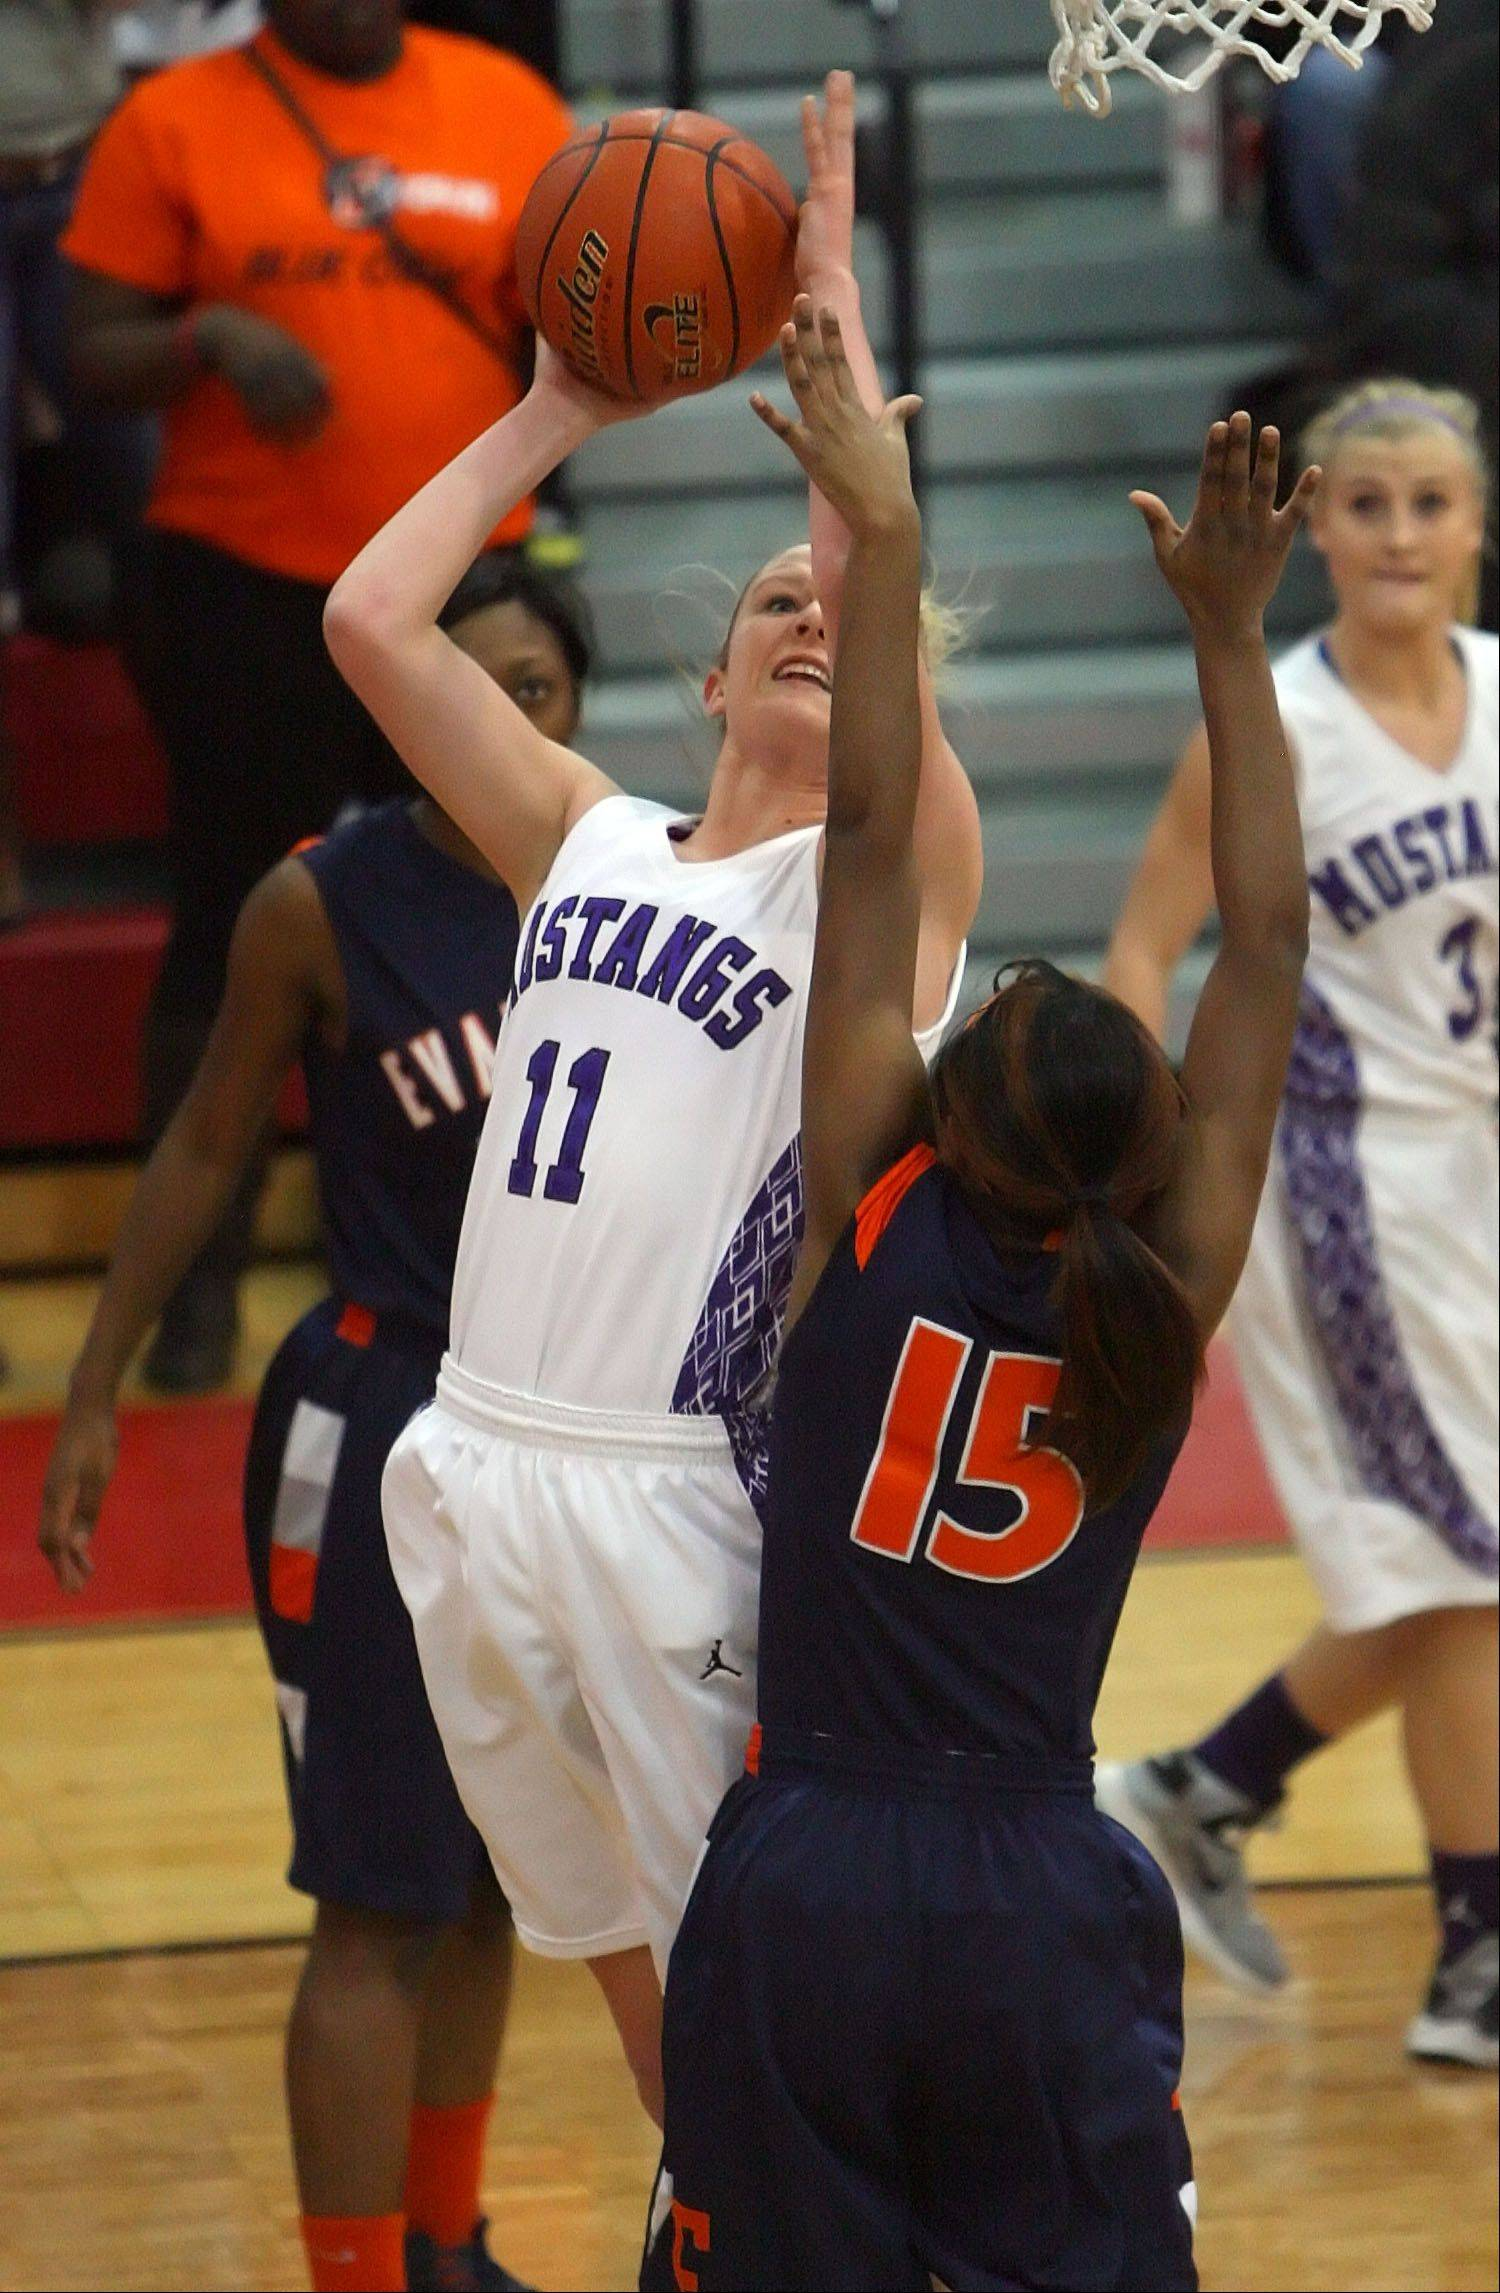 Images from the Rolling Meadows vs. Evanston Class 4A girls basketball supersectional game on Monday, Feb. 25 in Skokie.